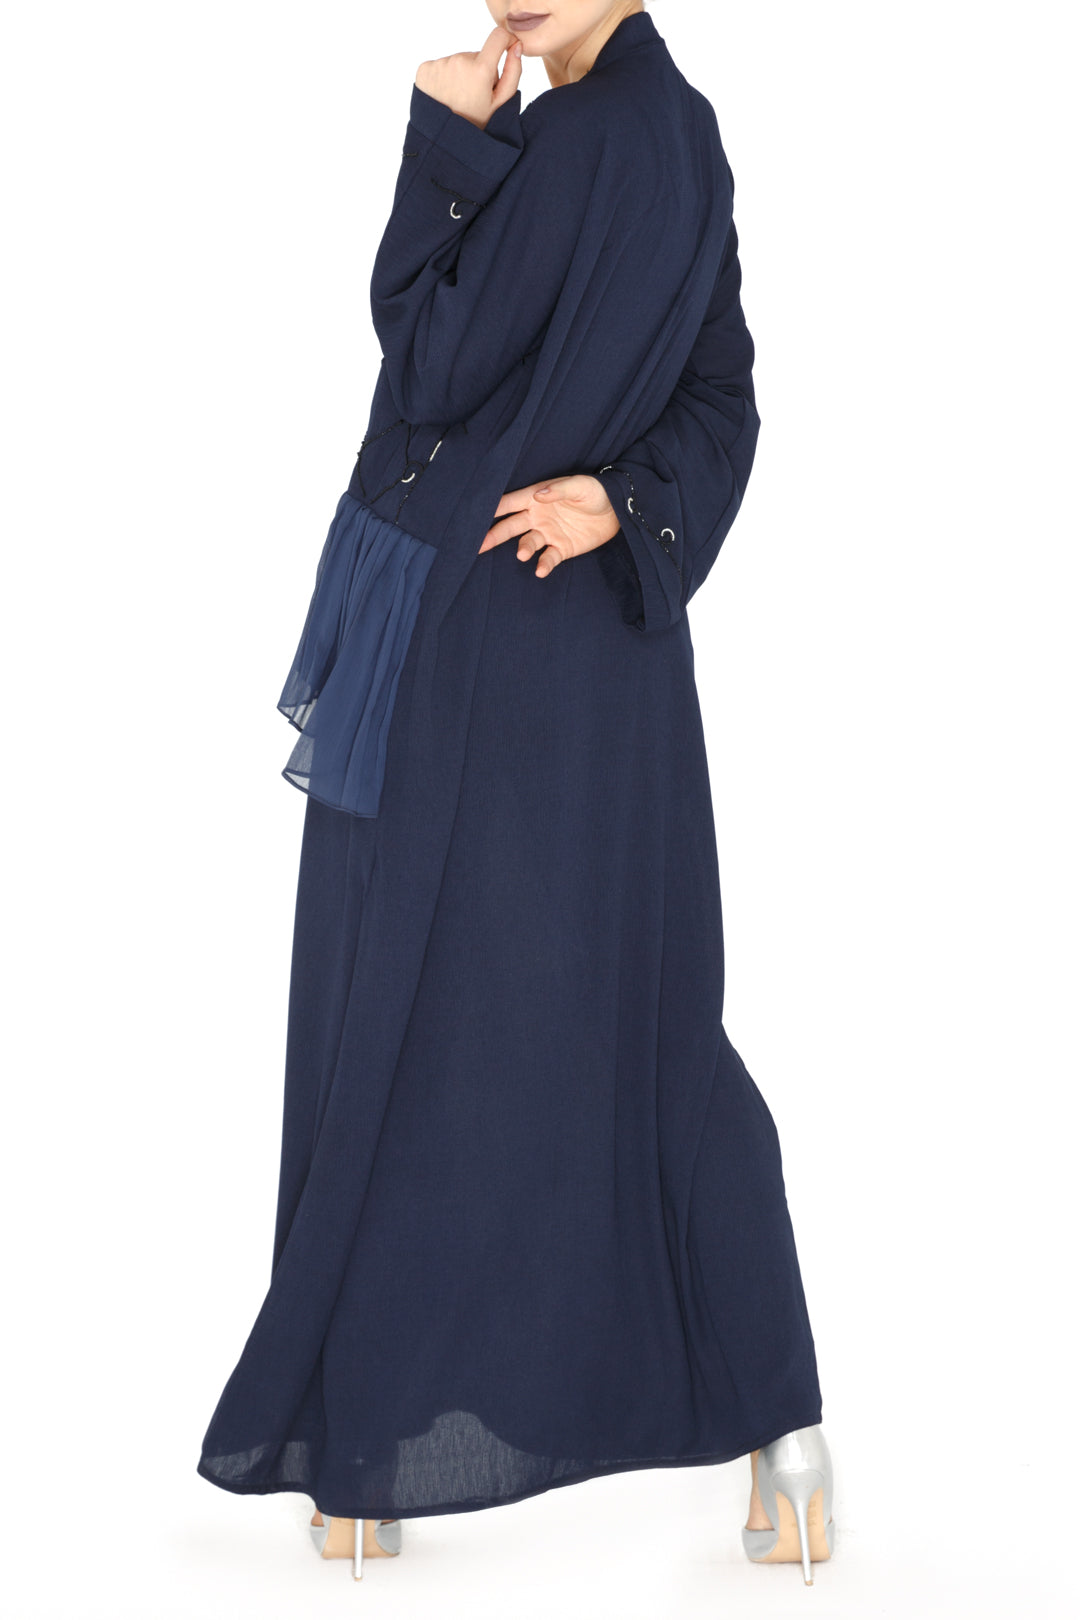 Blue Frill Pleated Abaya